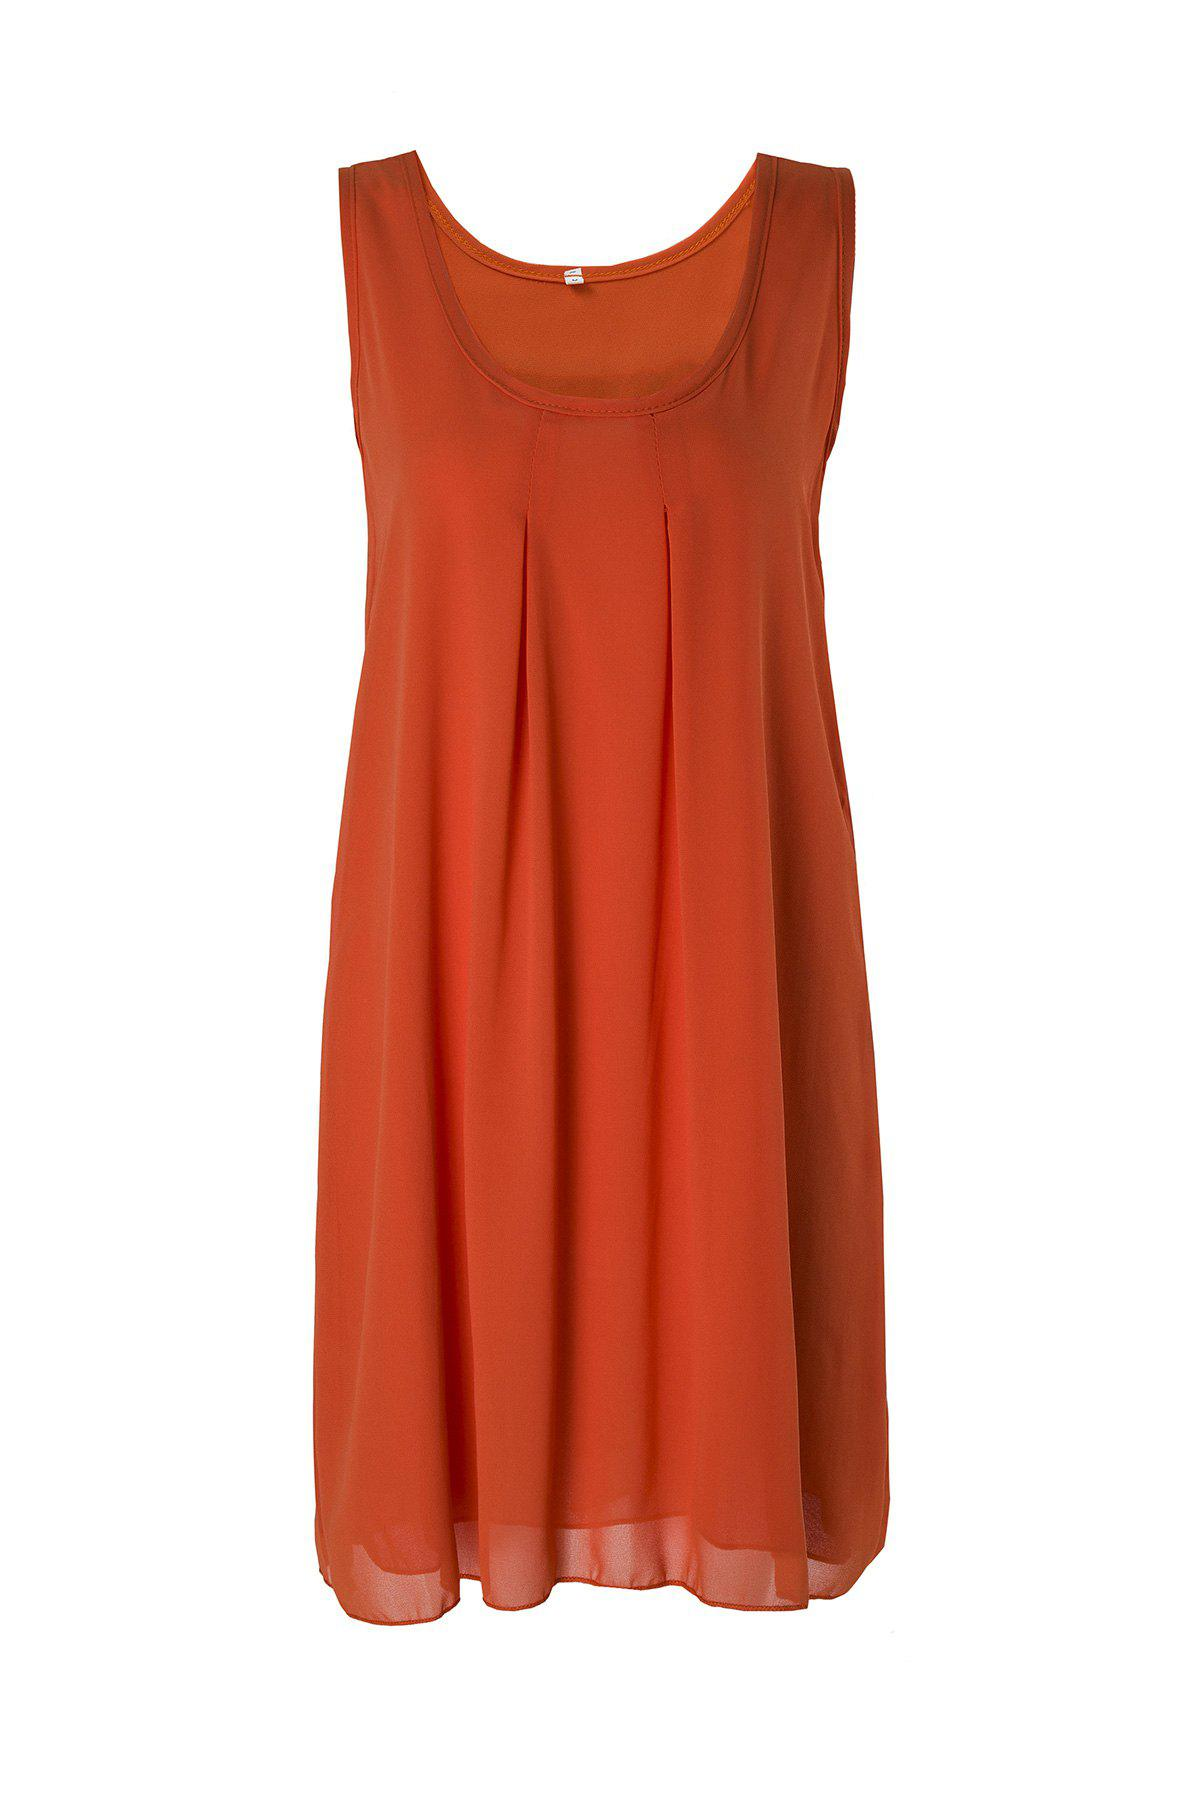 Lady Casual Round Neck Sleeveless Solid Color Women's Sundress